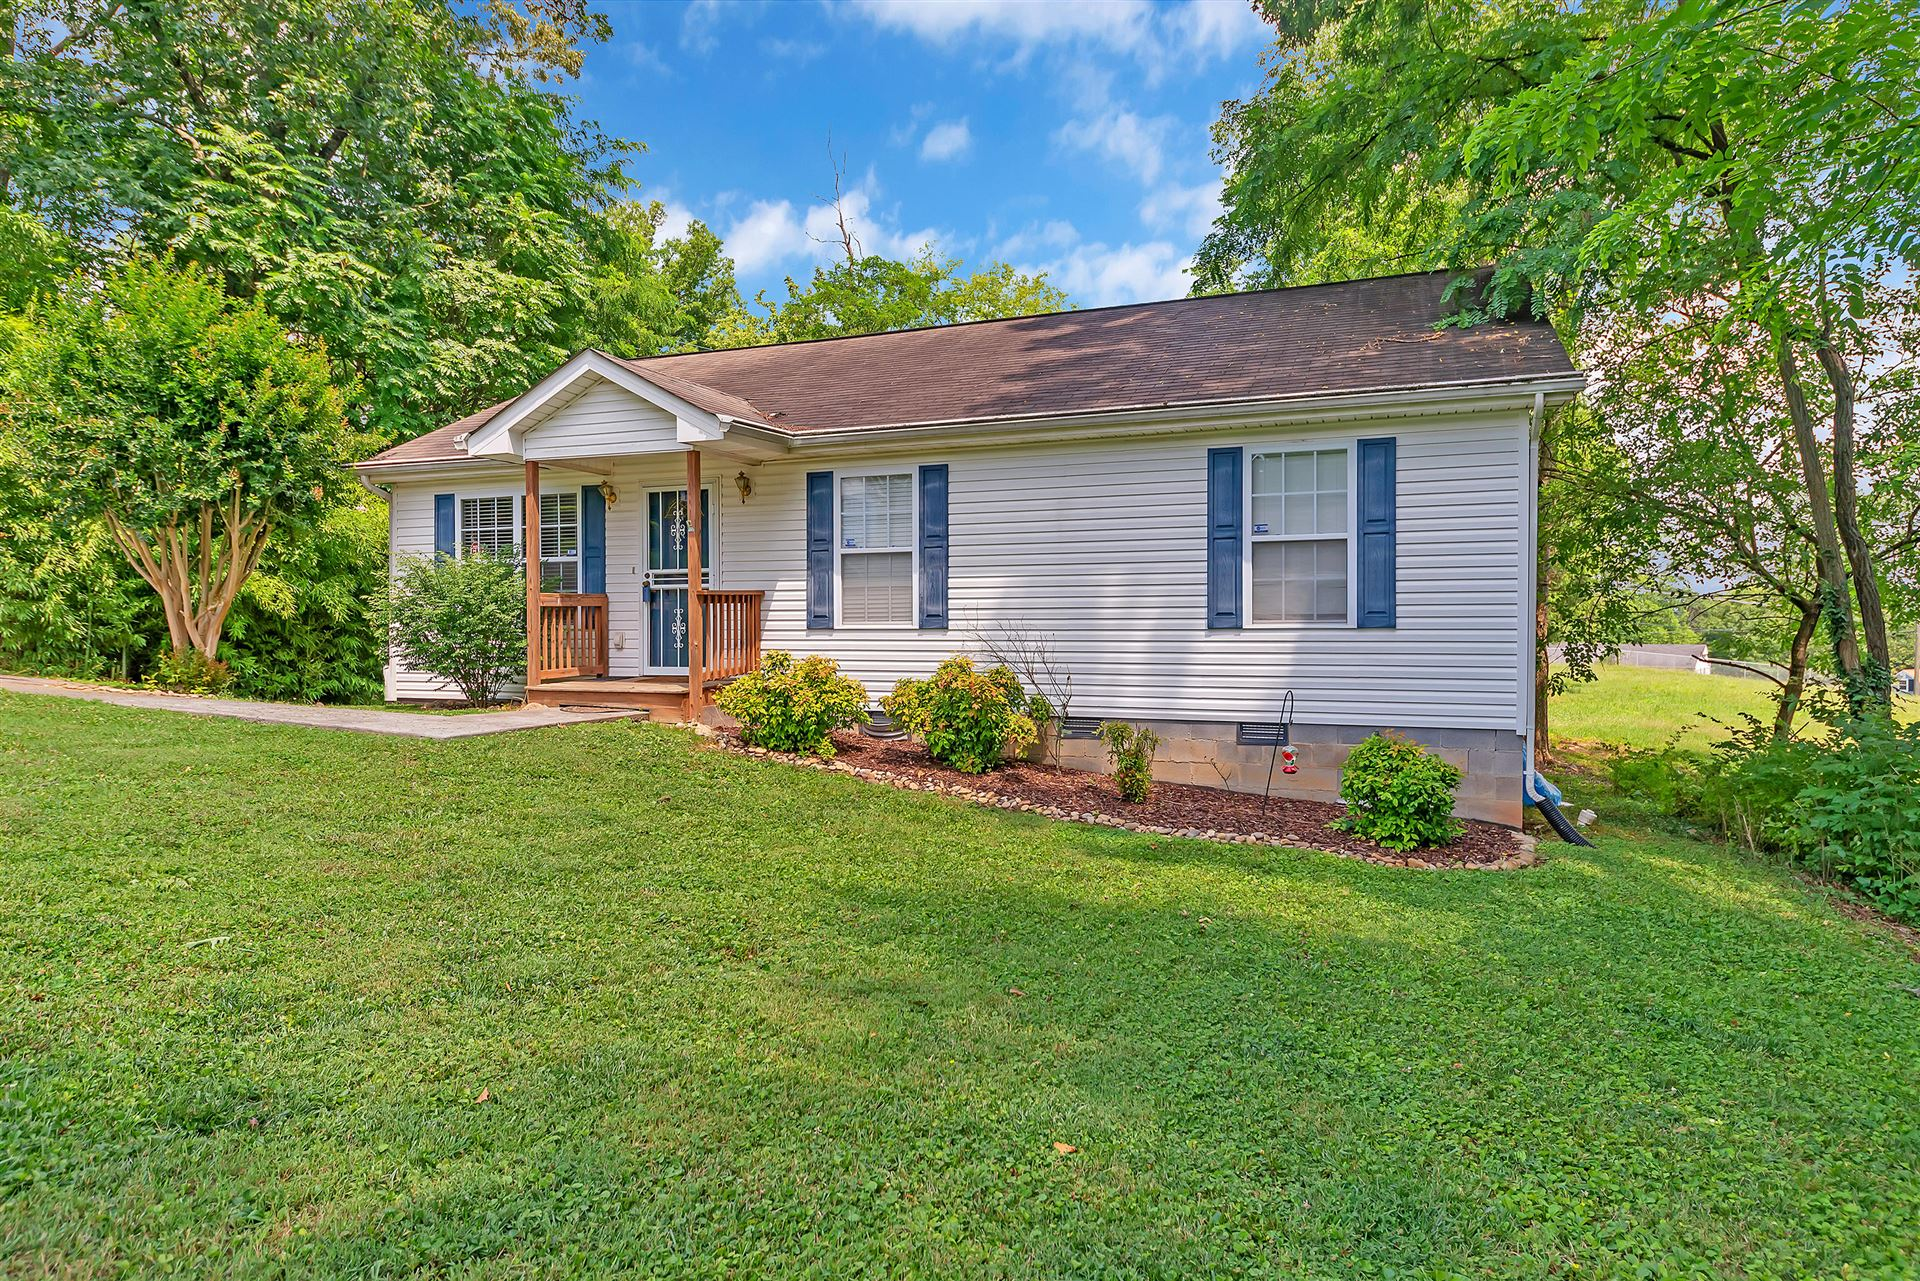 Photo of 4448 Tynemouth Drive, Knoxville, TN 37914 (MLS # 1122120)